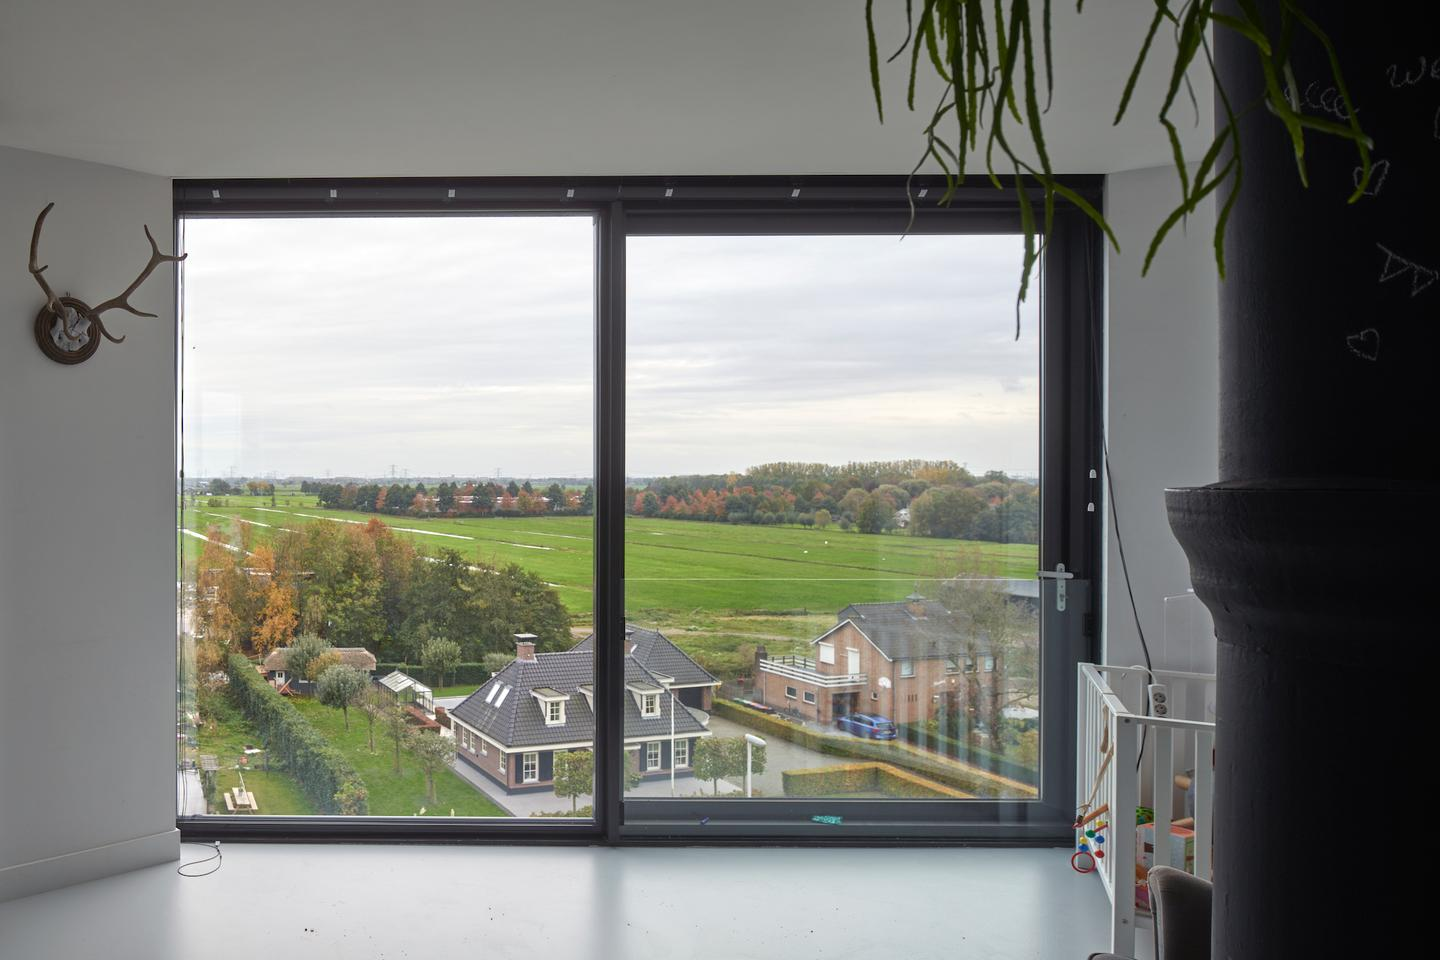 Transformation Watertower Nieuw Lekkerland features generous glazing to frame views of the surrounding countryside